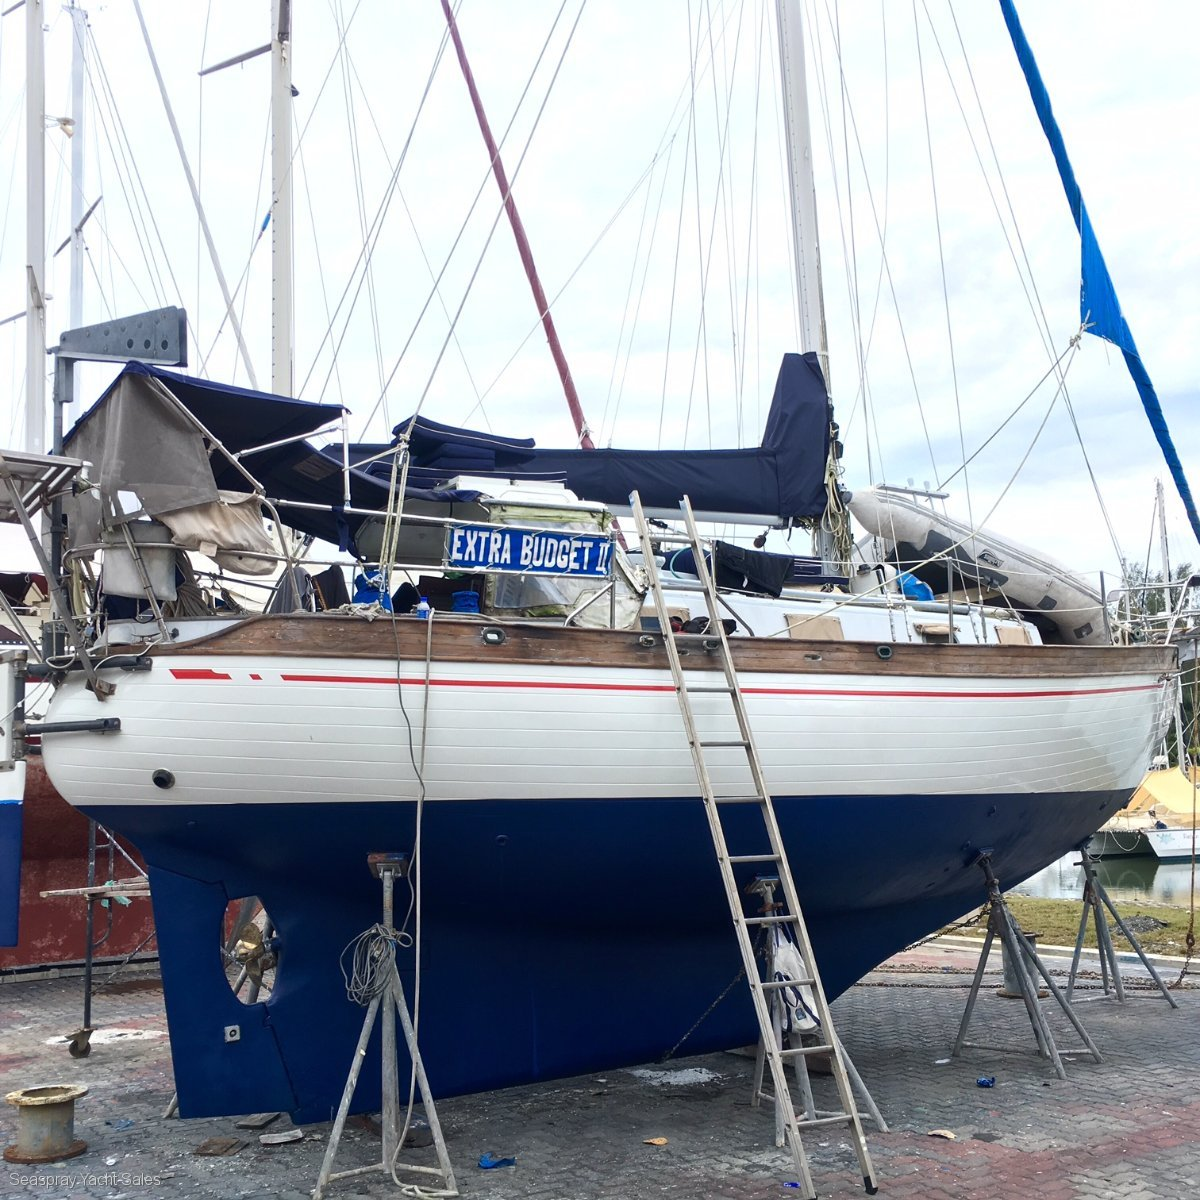 Baba 30 for sale in Langkawi, Malaysia.:Langkawi Boat sales and Services Baba 30 for sale.